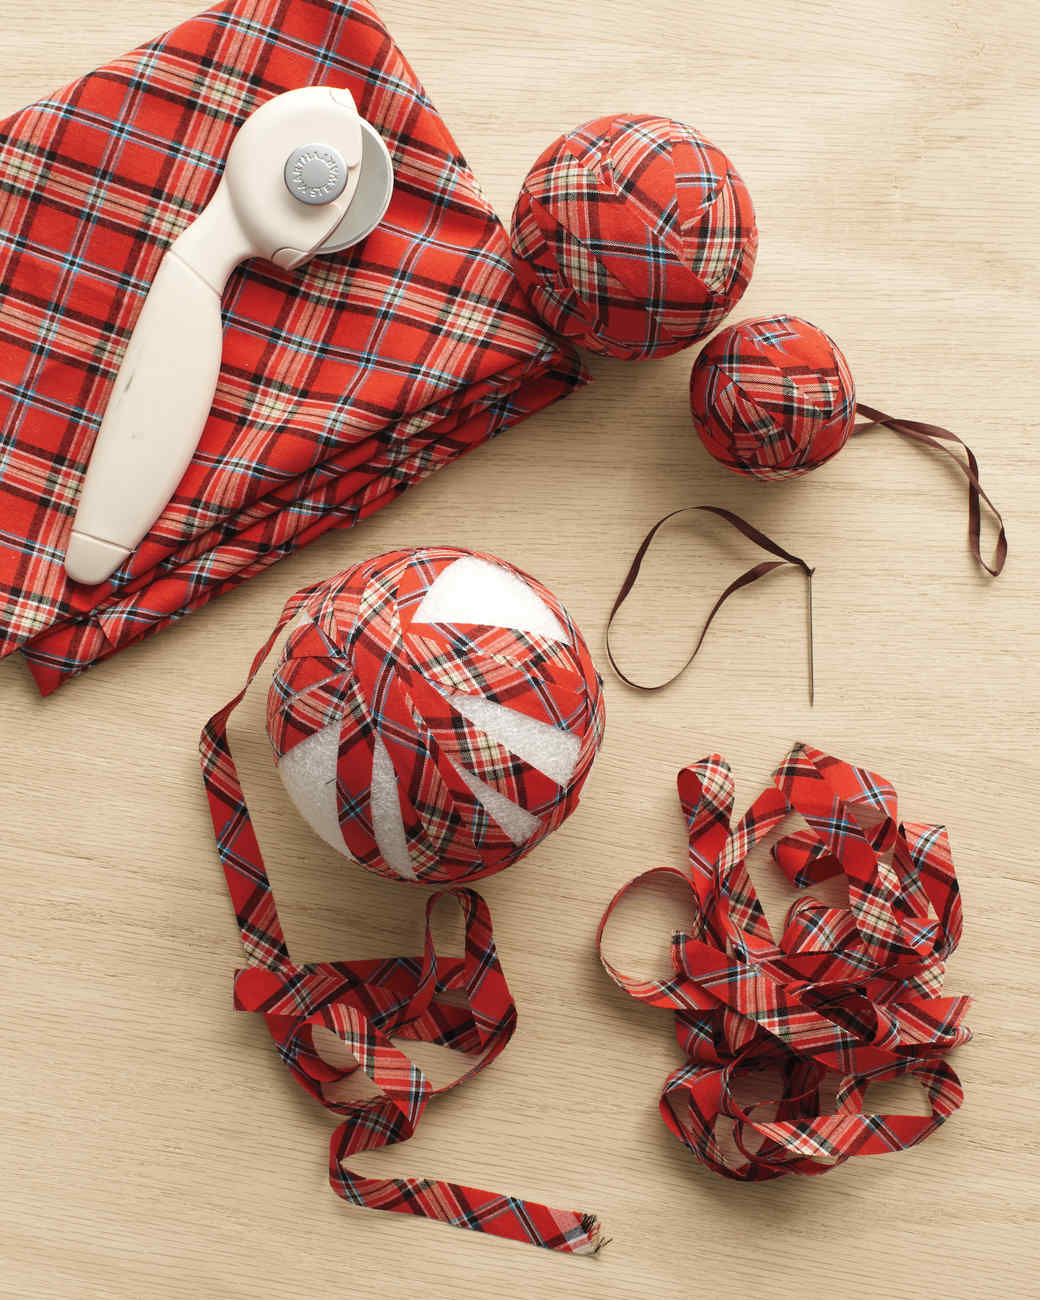 Plaid Ball Ornaments Martha Stewart